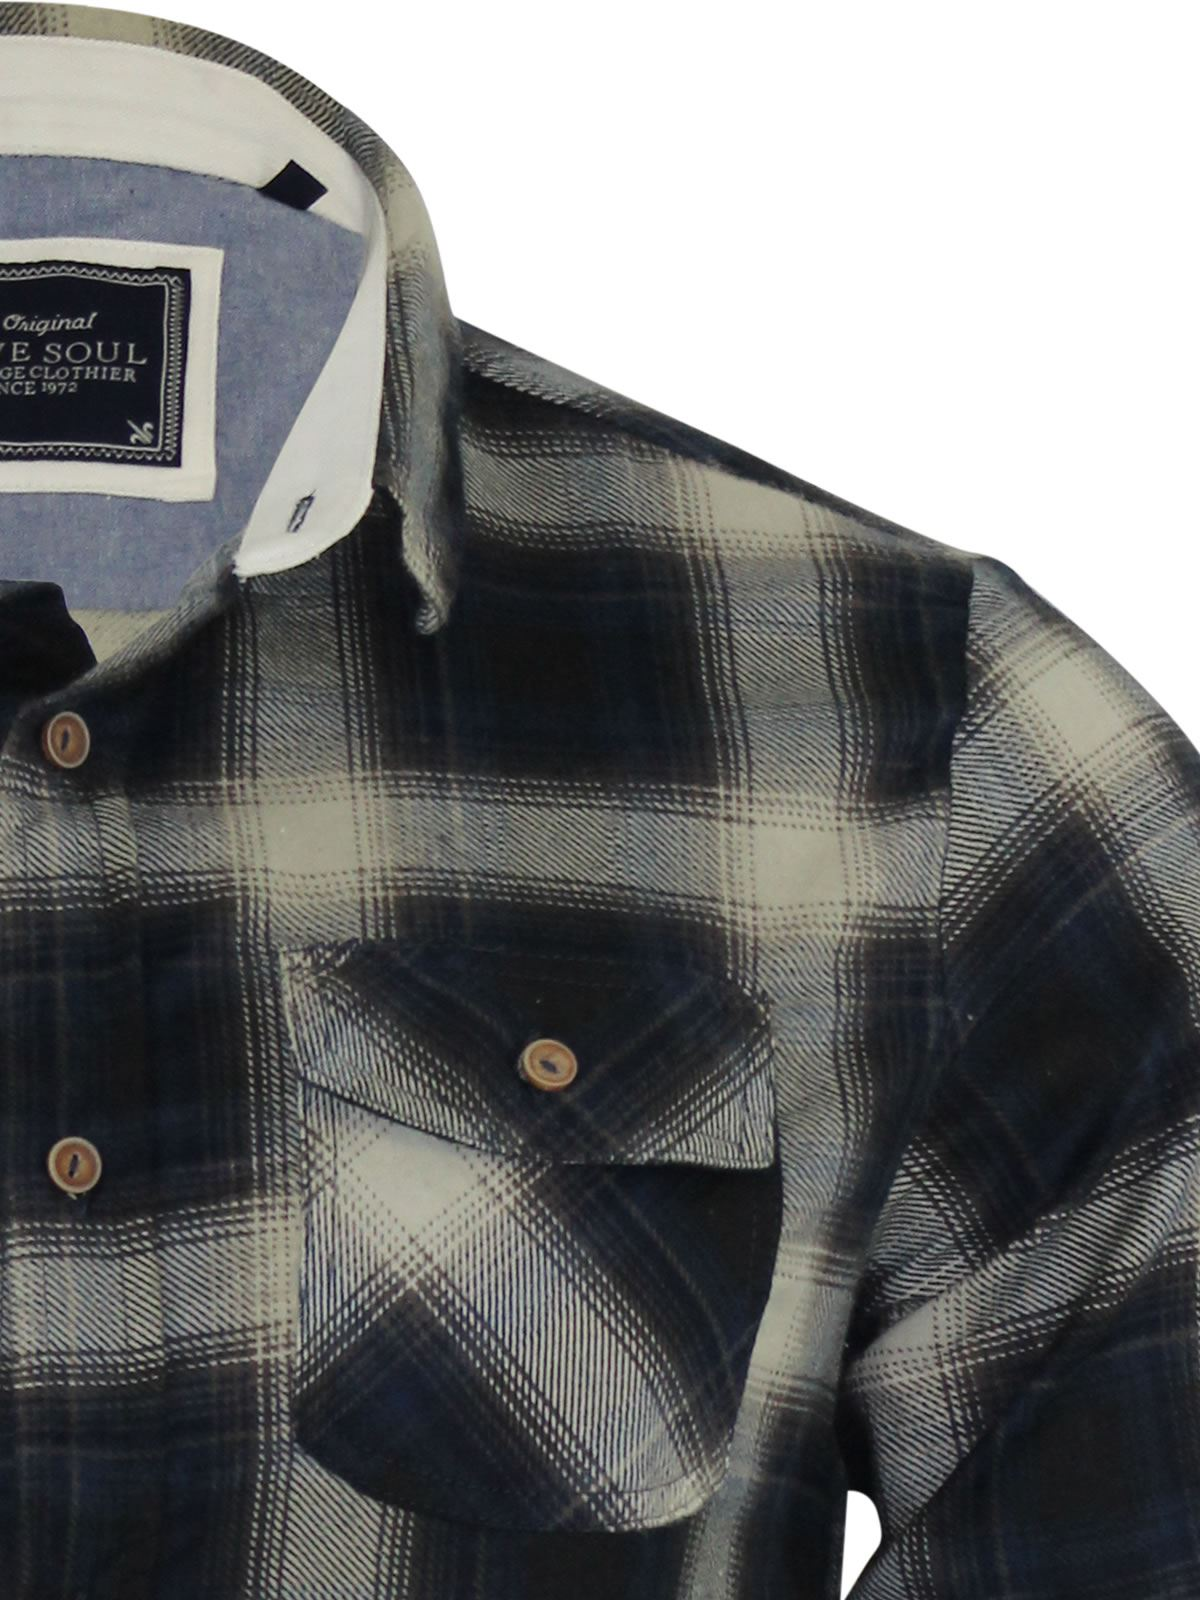 Mens-Check-Shirt-Brave-Soul-Flannel-Brushed-Cotton-Long-Sleeve-Casual-Top thumbnail 16